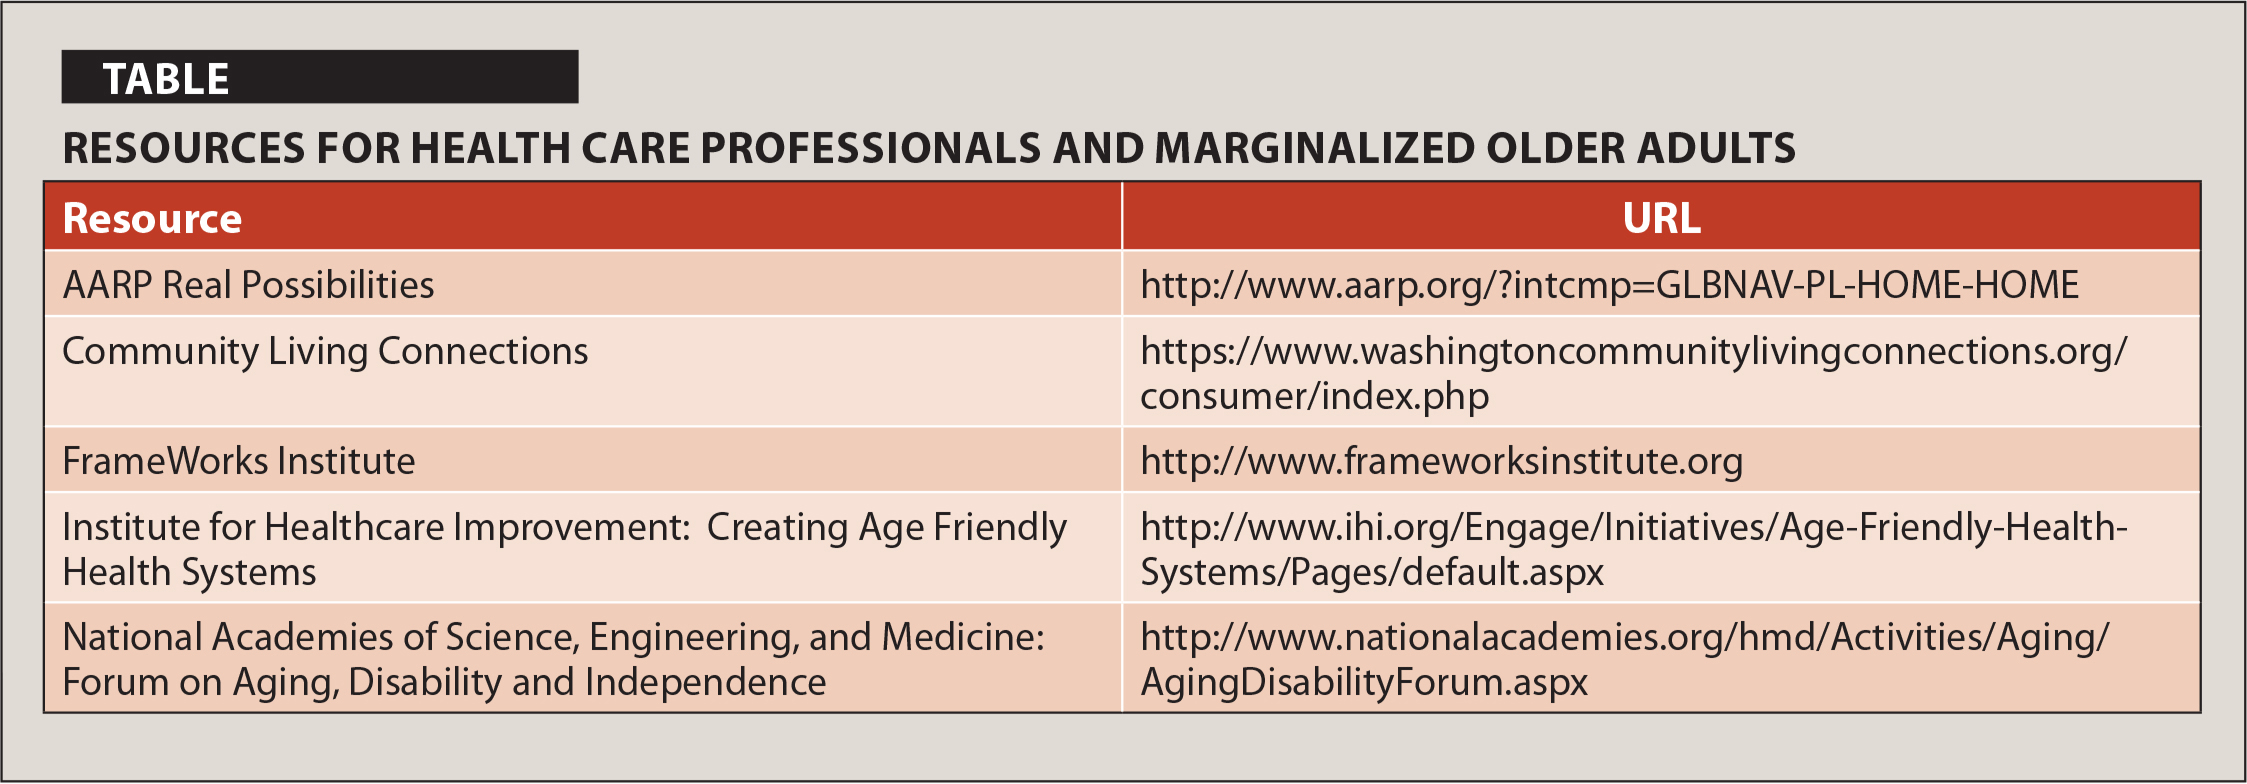 Resources for Health Care Professionals and Marginalized Older Adults